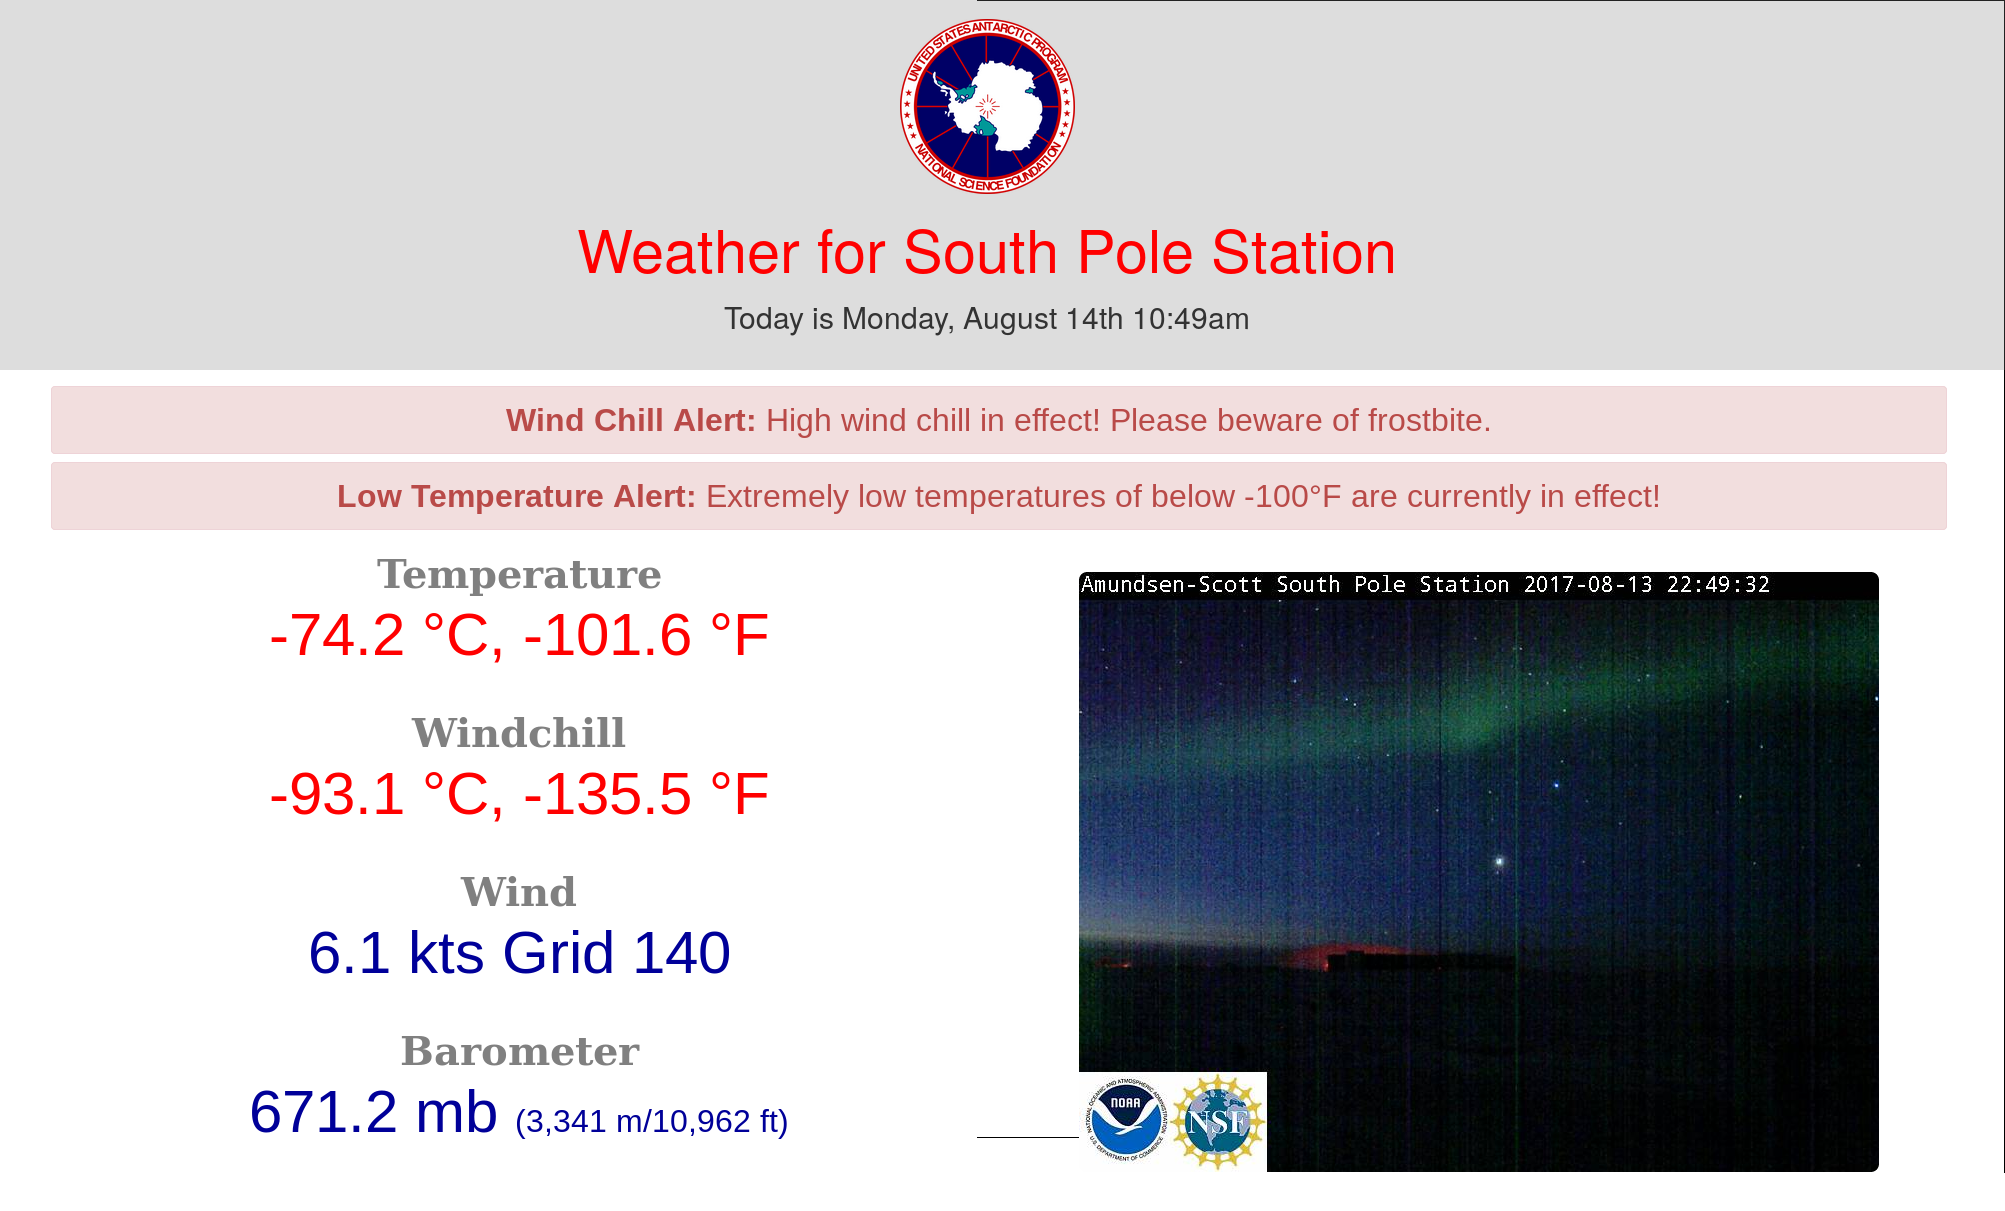 Temperature display at the south pole station